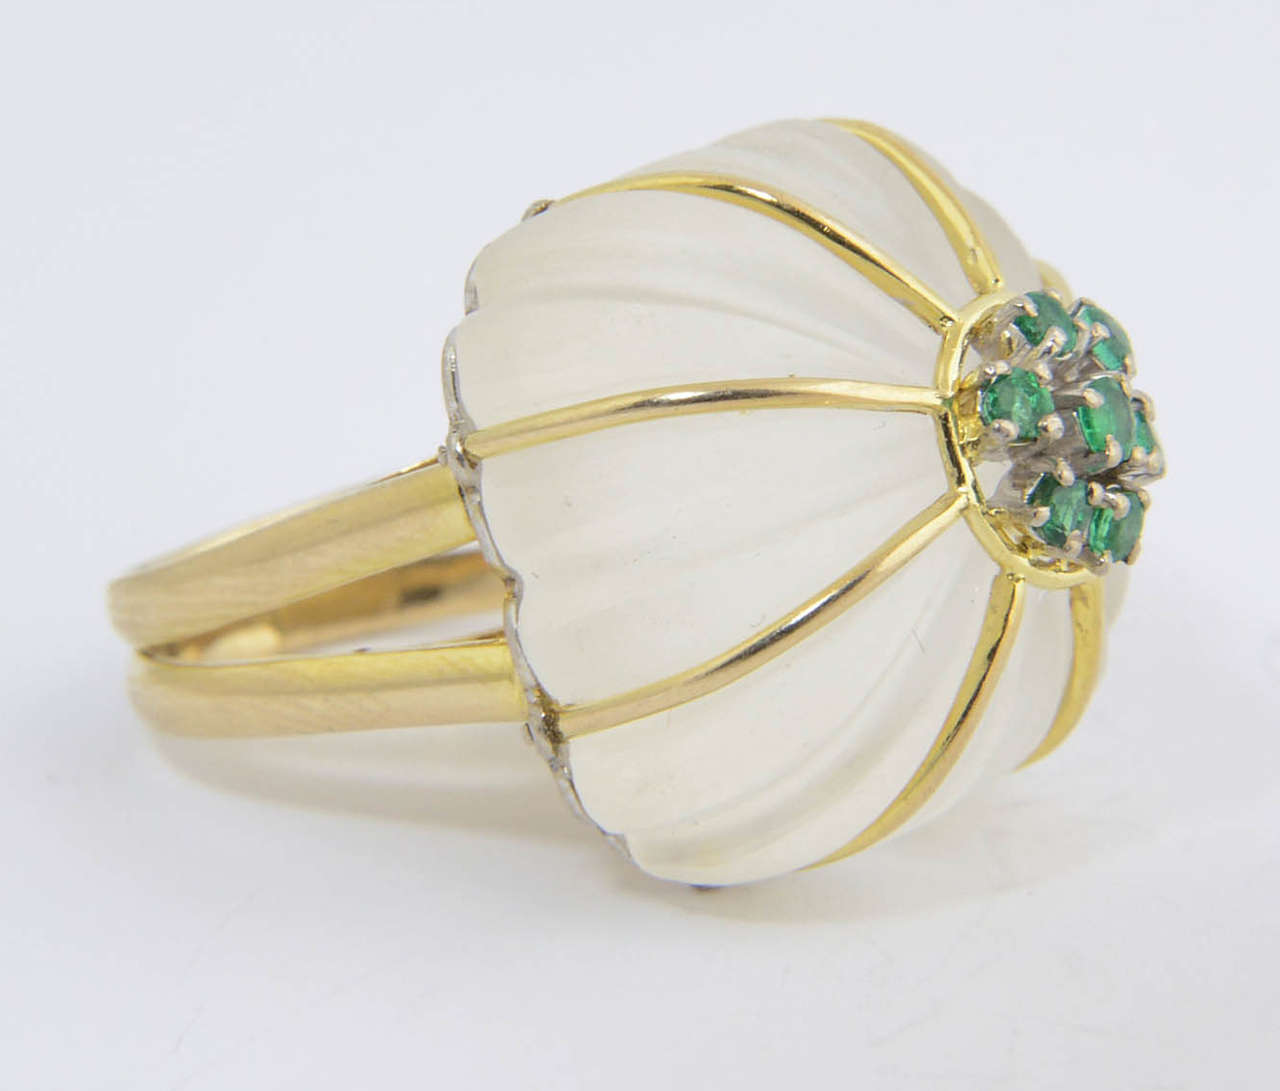 1970s Carved Rock Crystal Emerald Gold Ring For Sale 5